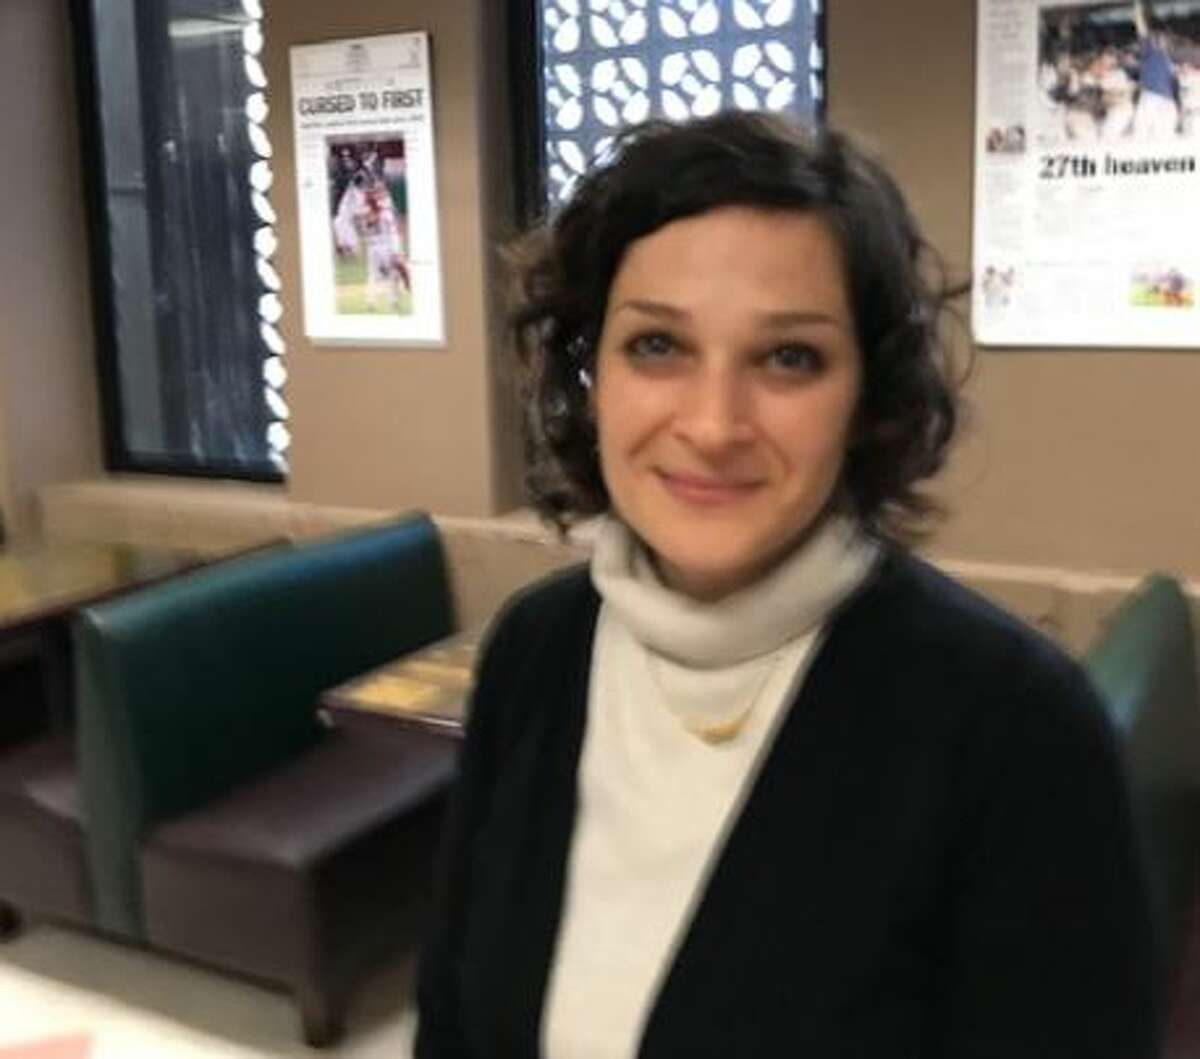 Tamar Gil is helping to revitalize the Negev and Galilee areas of Israel. She was recently in the Capital Region and came to Colonie N.Y. on Thursday Jan. 9, 2020.